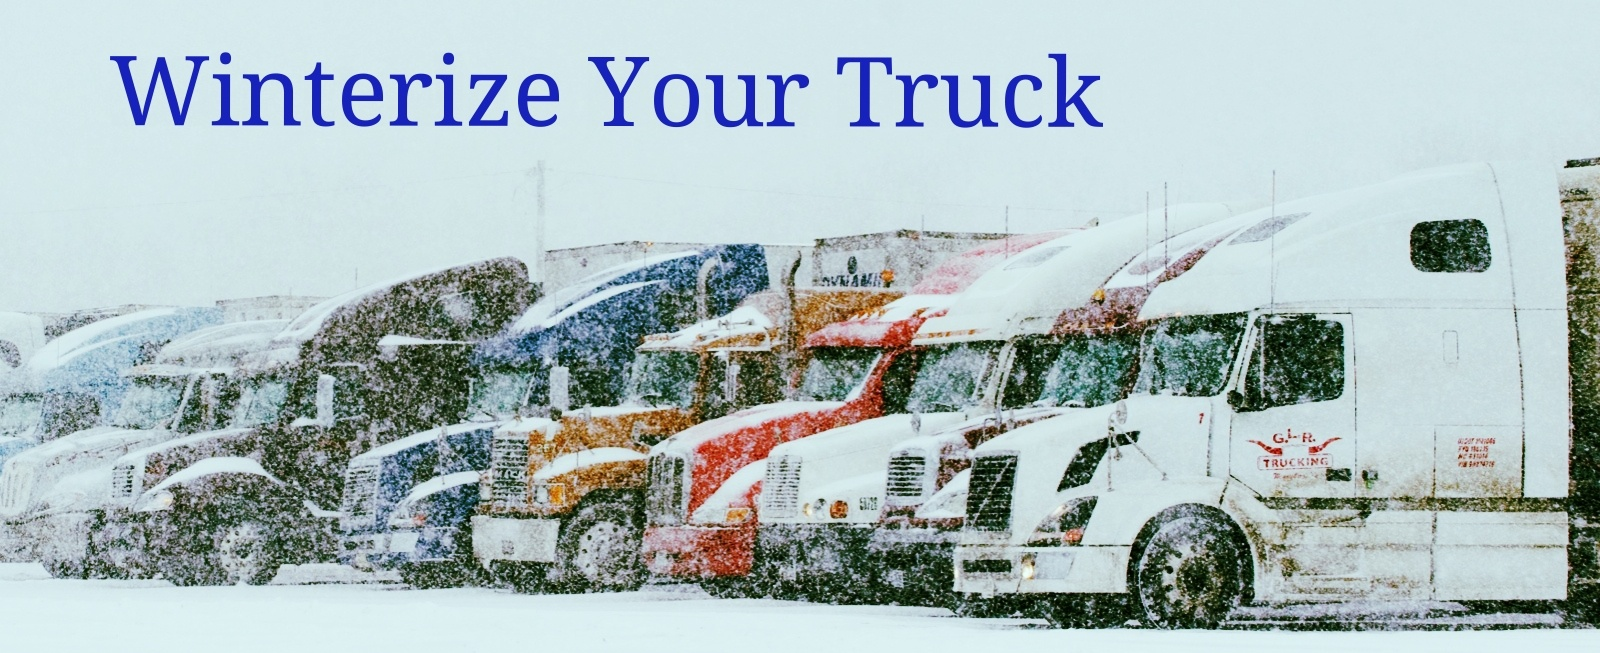 How to Winterize Your Truck